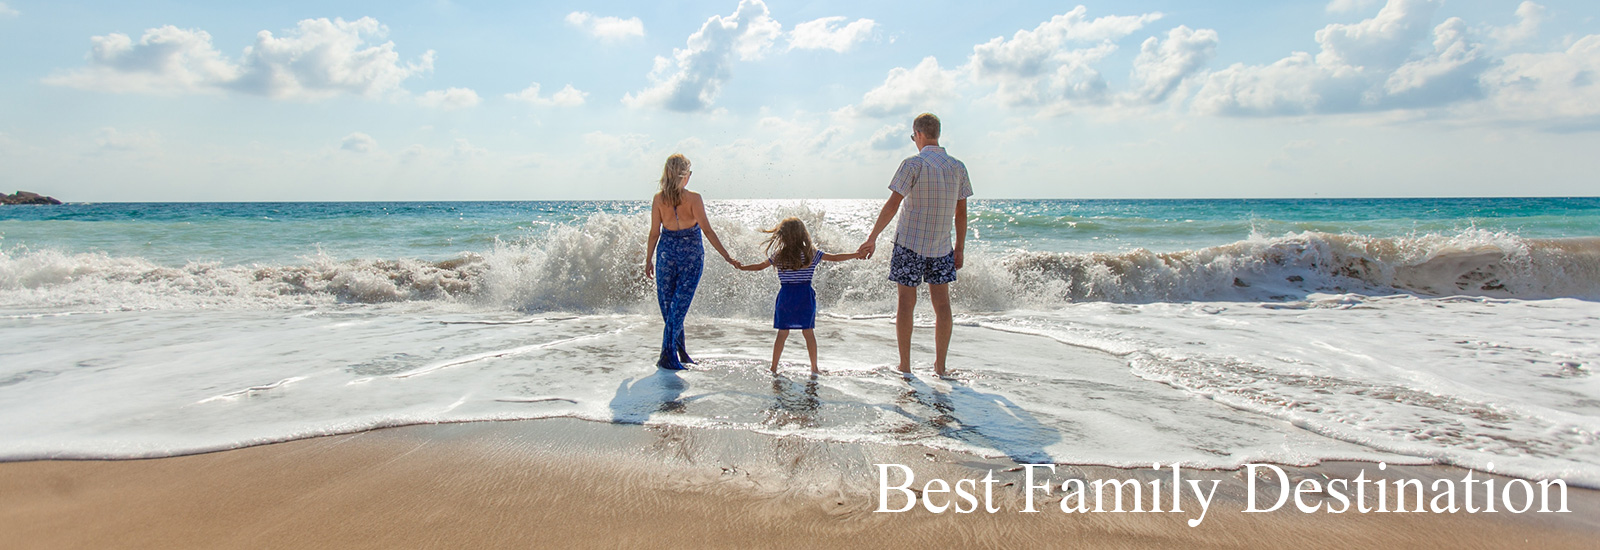 Best Family Destination